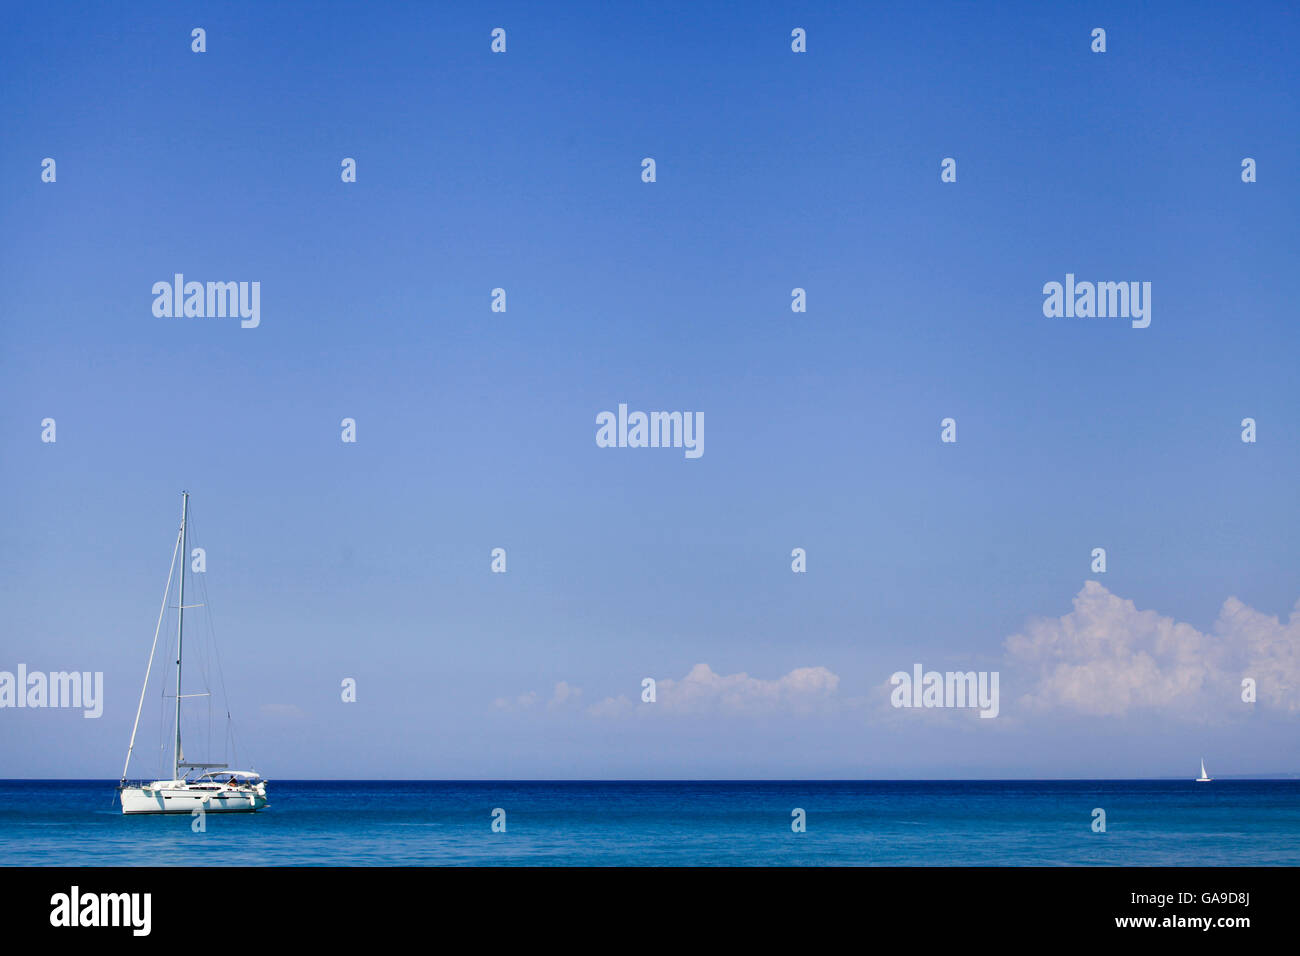 Sailing boats as seen from the Xigia beach in Zakynthos on July 25, 2015. - Stock Image